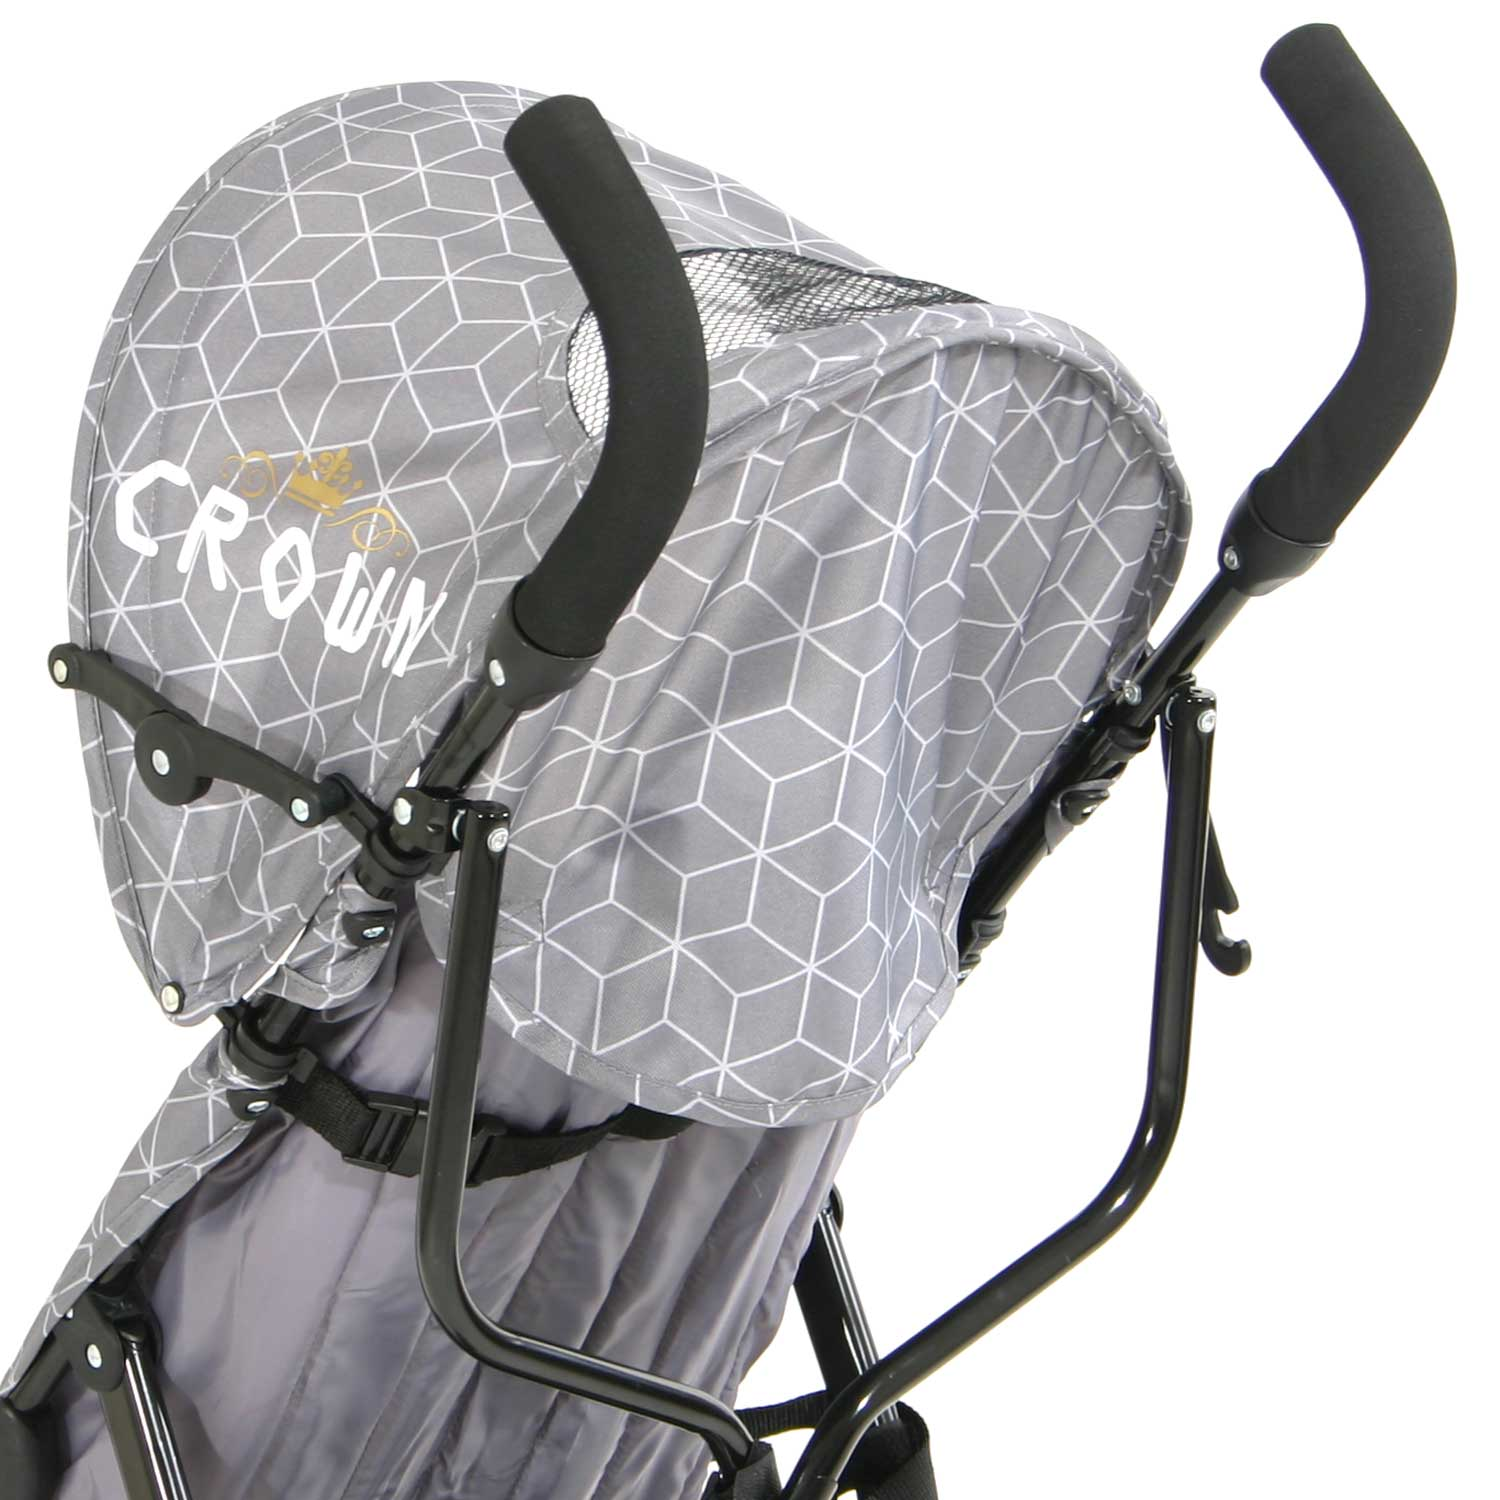 Crown_Kinderwagen_St120_grey_04.jpg